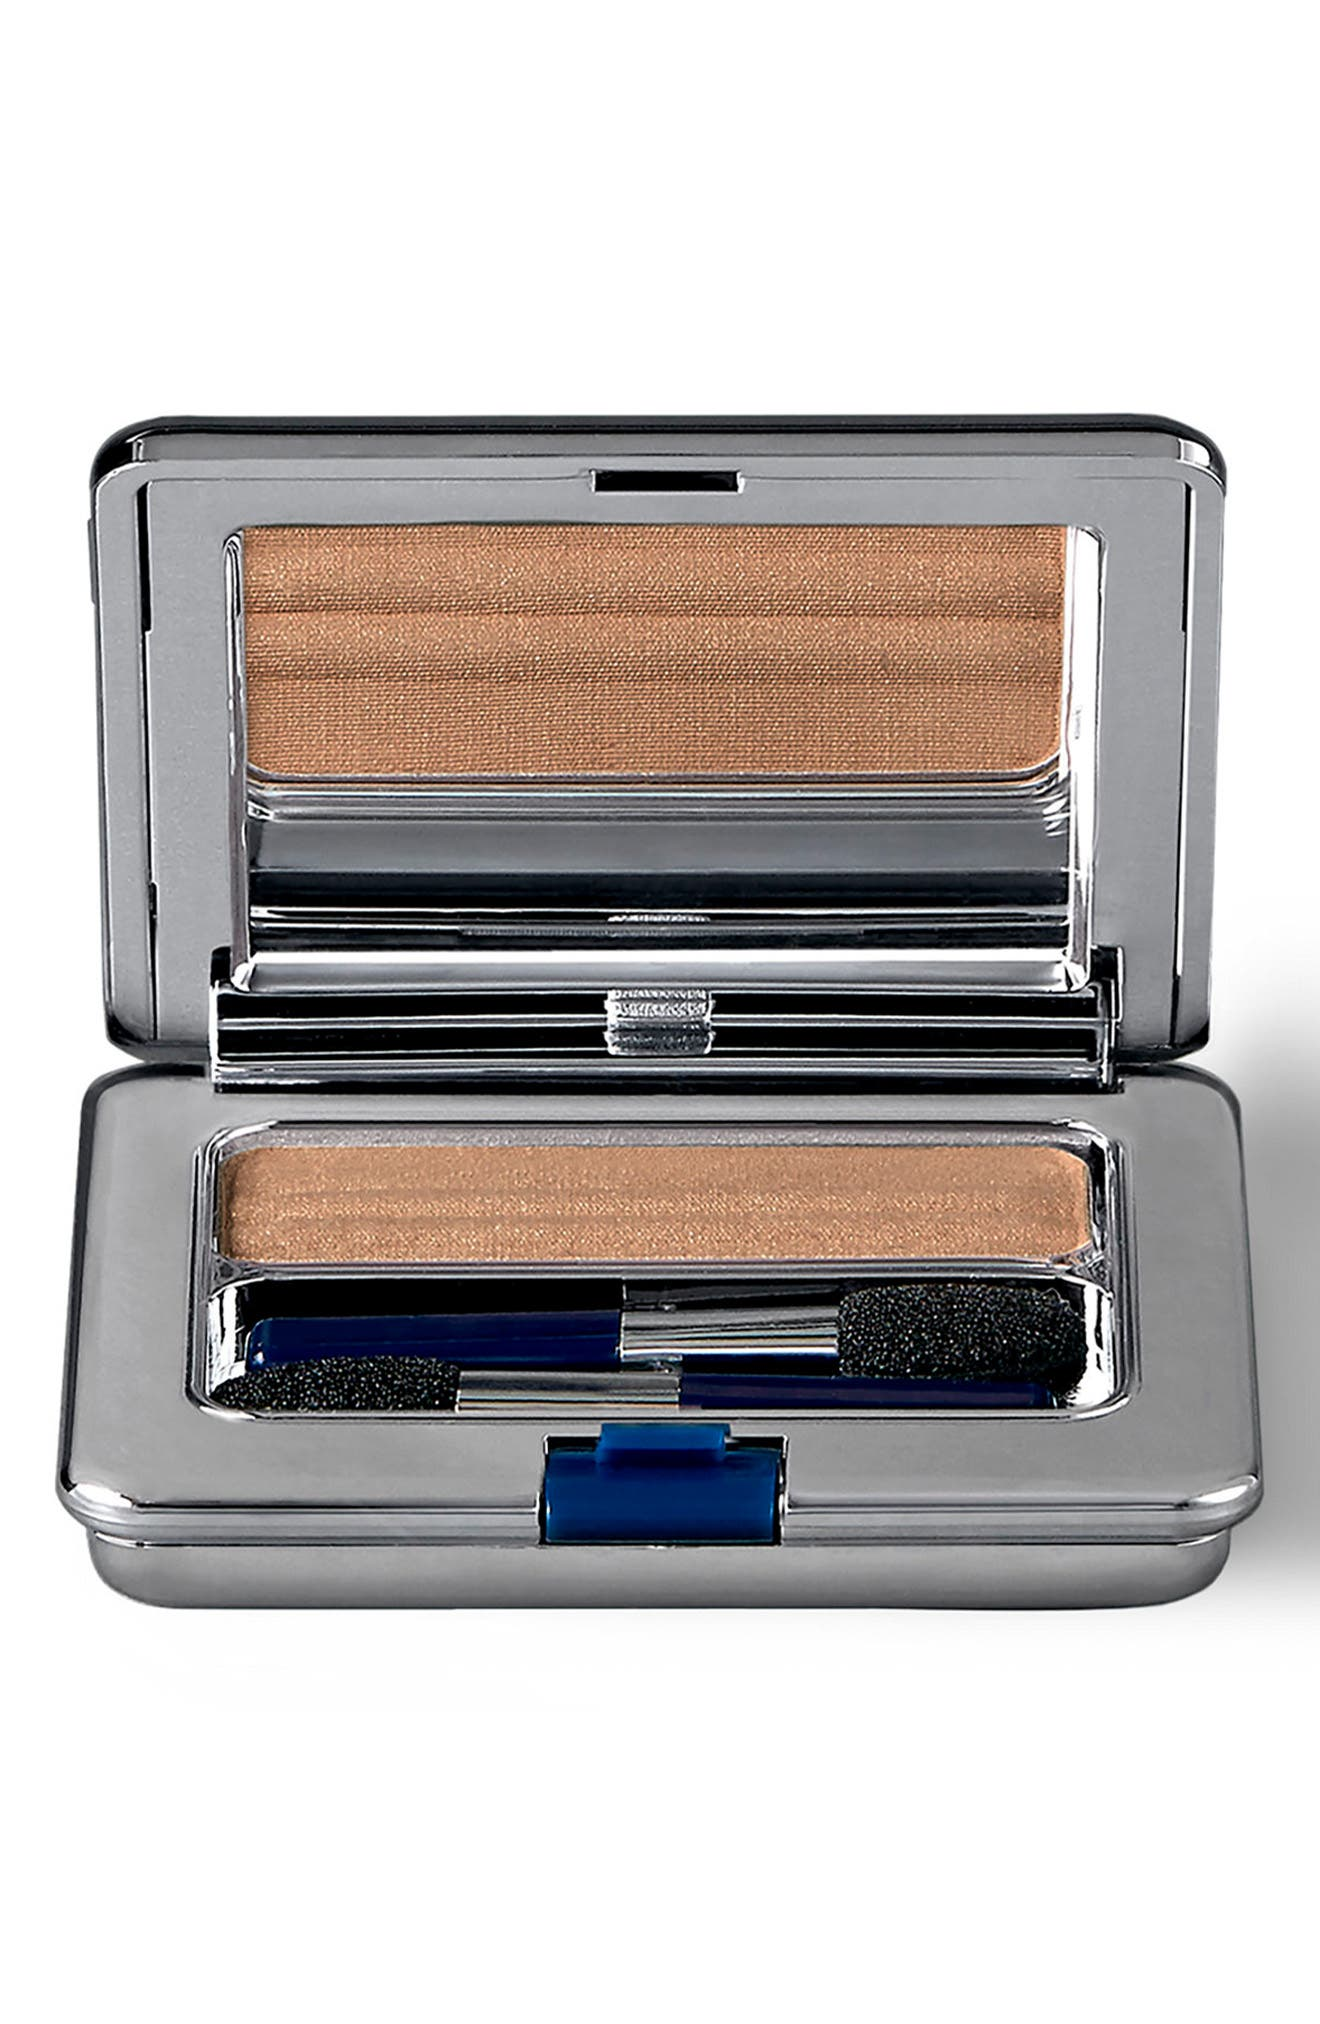 Main Image - La Prairie Cellular Treatment Eye Colour